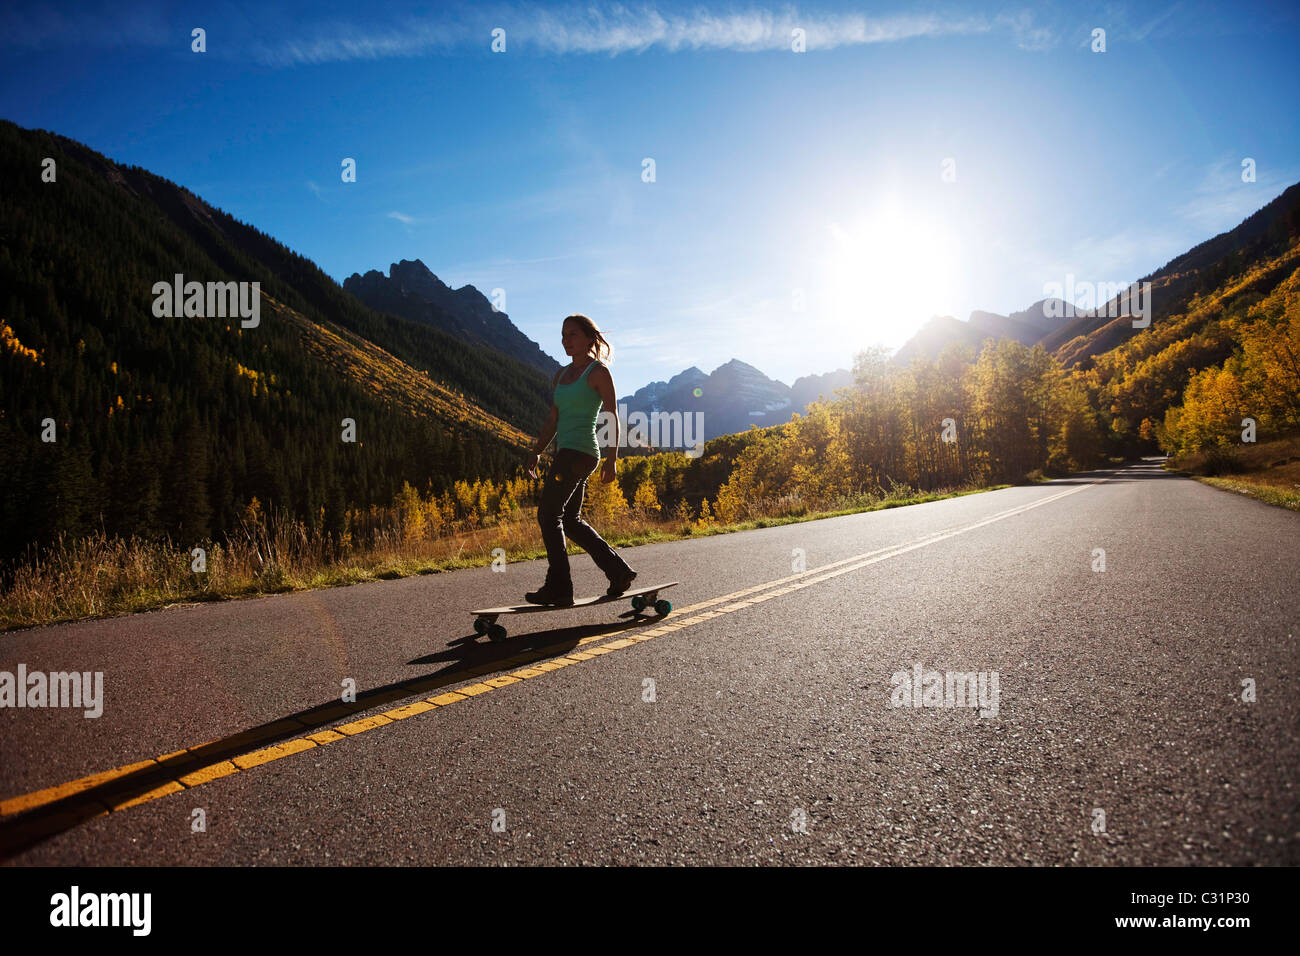 A young woman longboards down a smooth country road through the mountain peaks and gold forests. - Stock Image